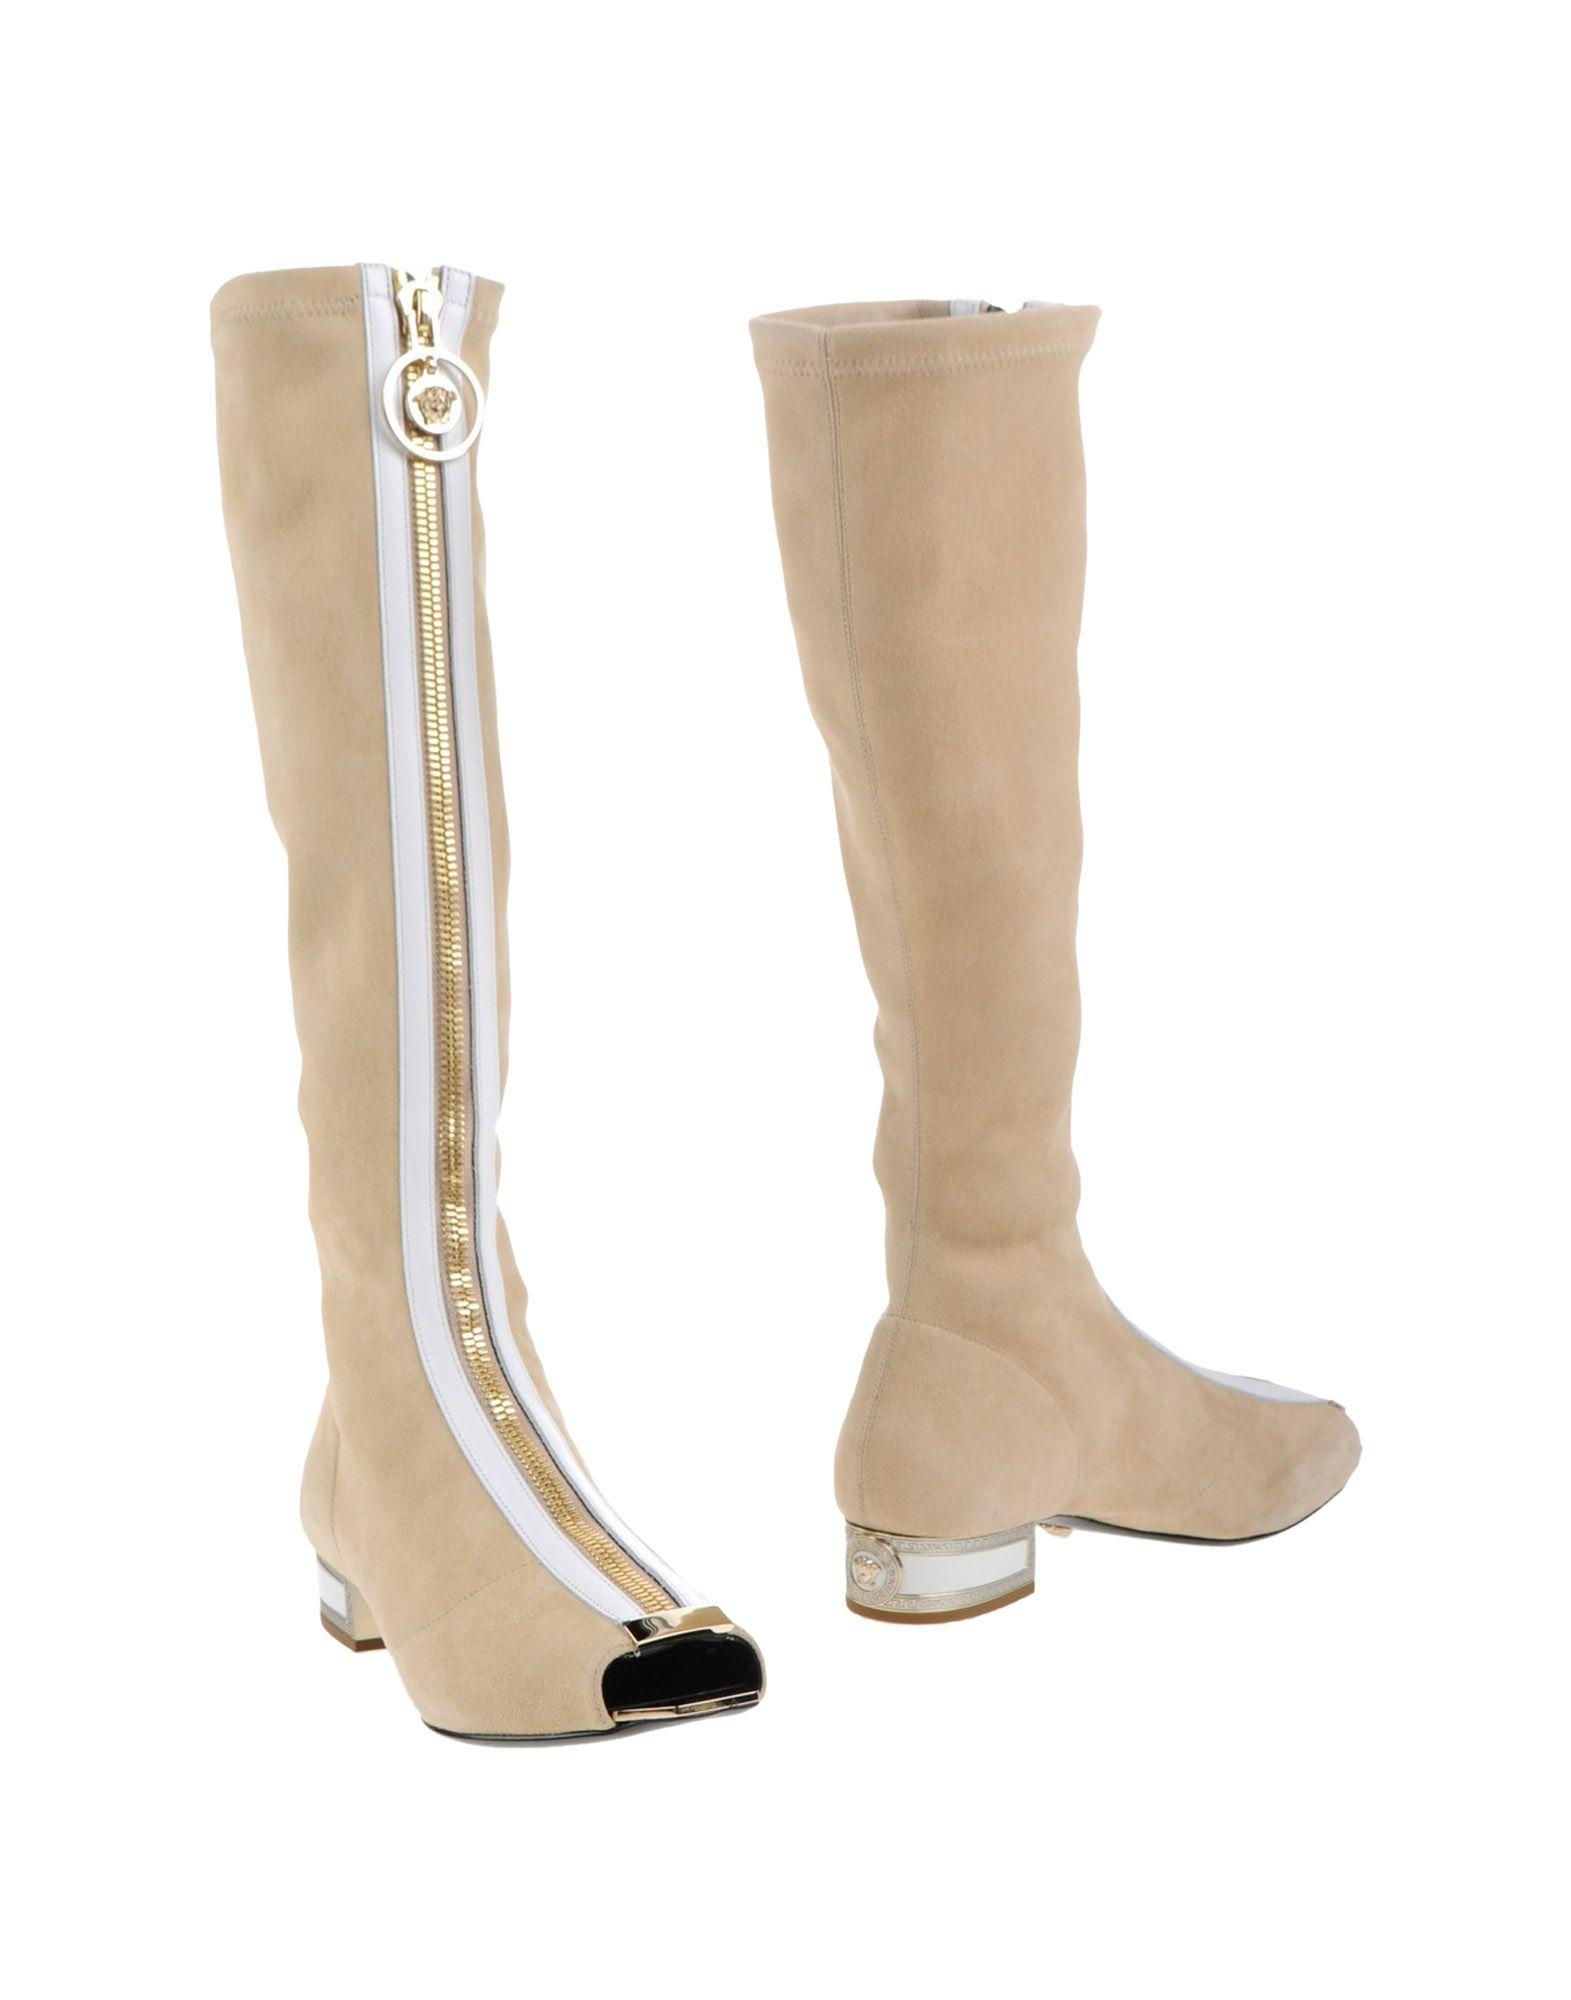 Popular Versace Womens Leather Chain Detail Boots  Letshoesing